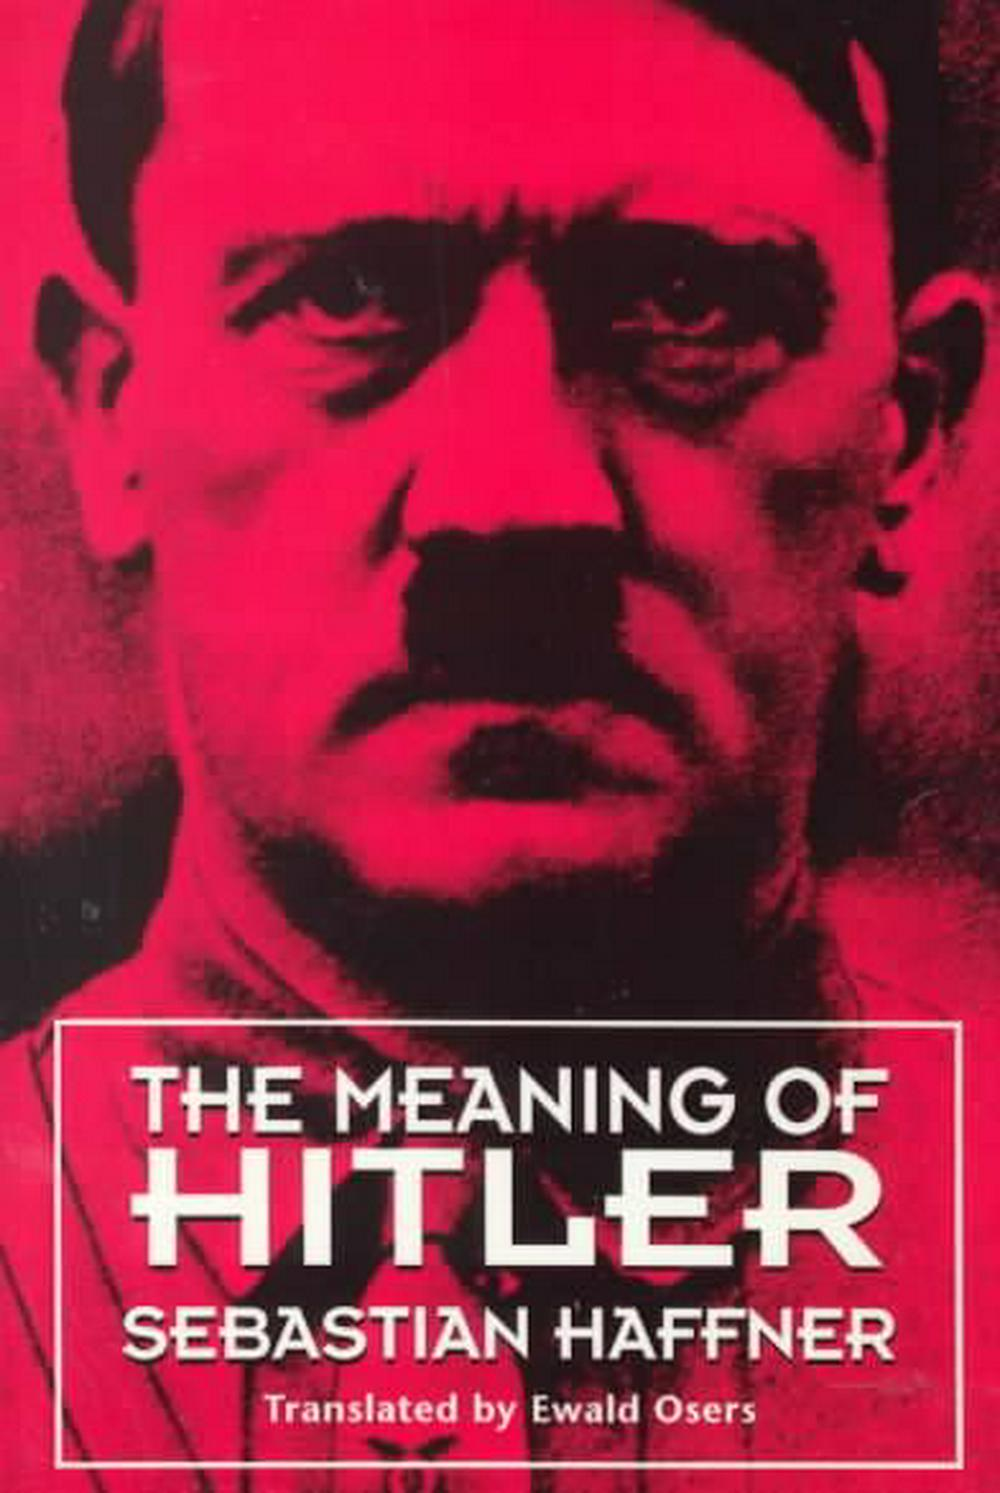 an analysis of the book the meaning of hitler by sebastian haffner The meaning of hitler: sebastian haffner: 9781842121948: books - amazonca the meaning of hitler and over one million other books are available for amazon kindle.